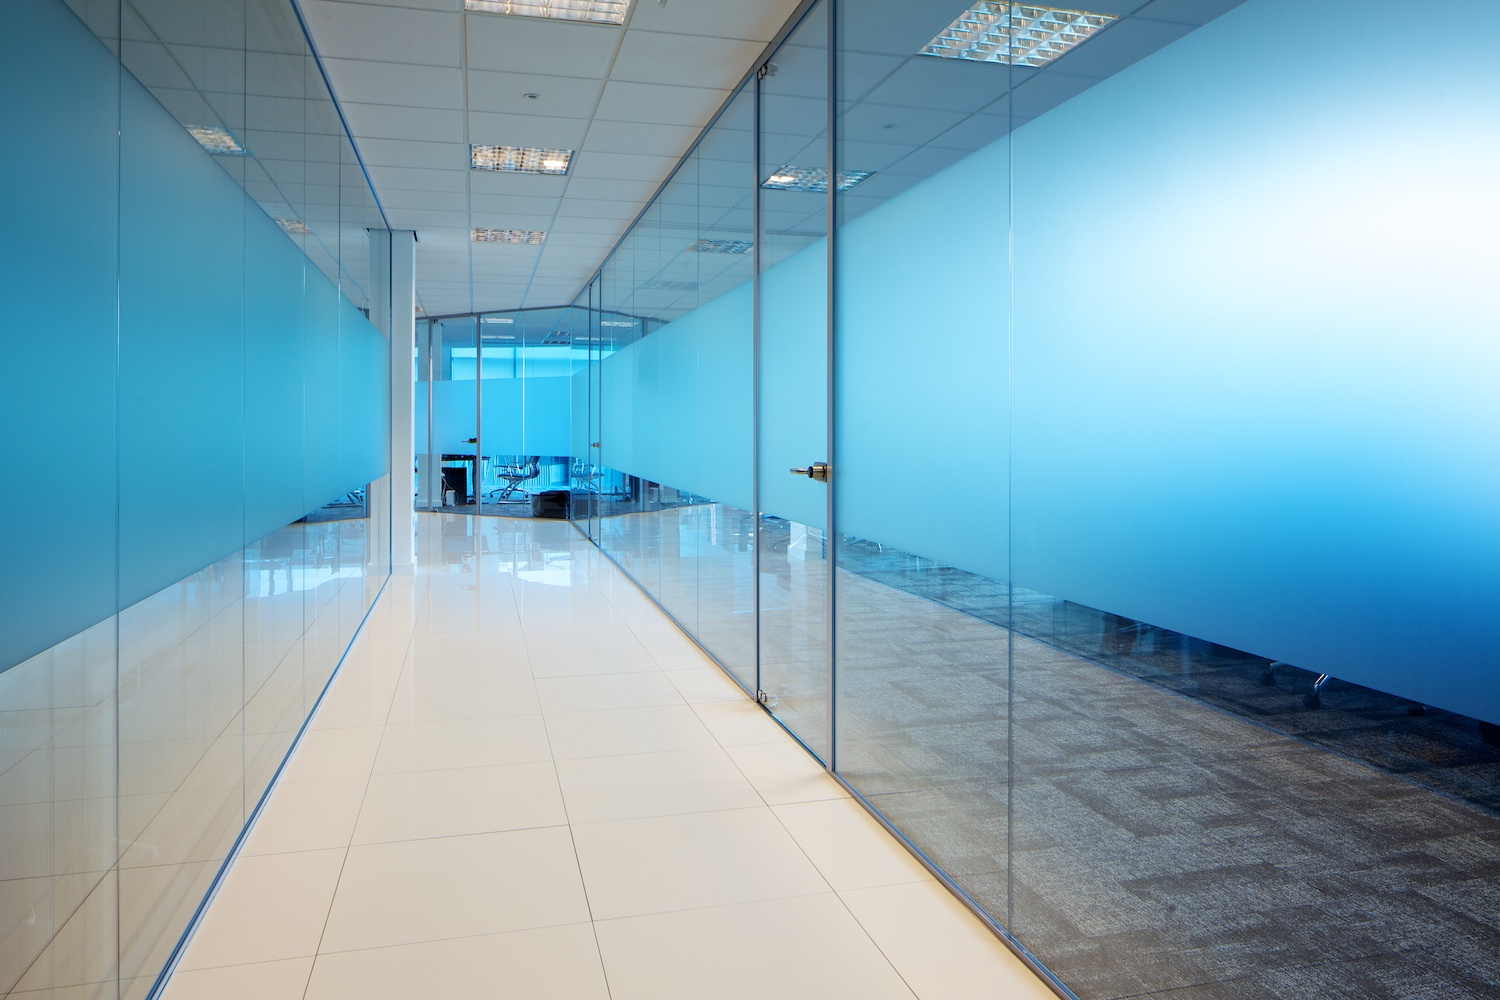 commercial office interior hallway with glass doors